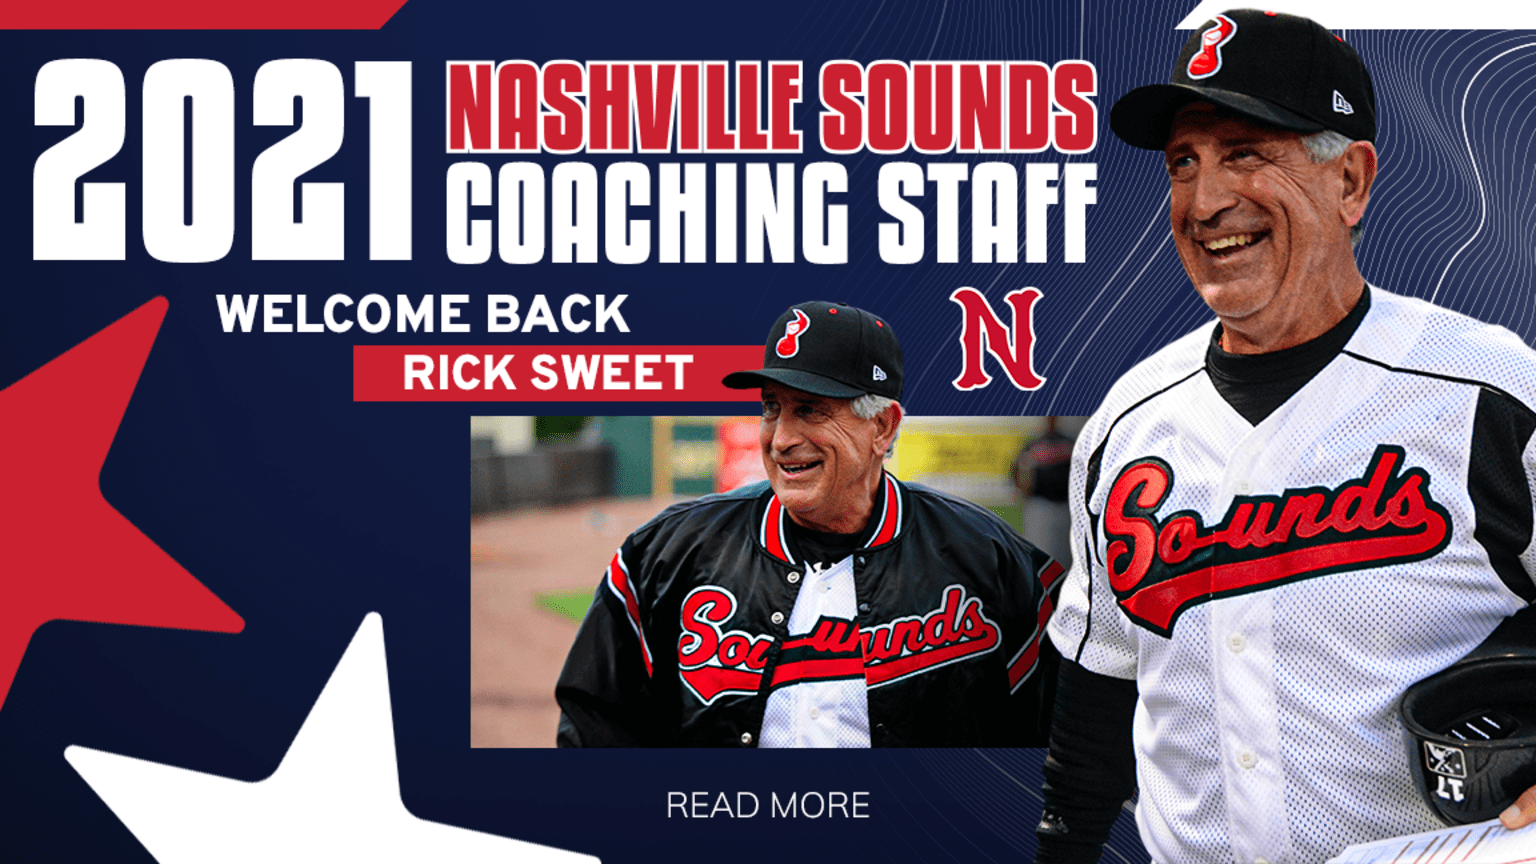 Image via Nashville Sounds.png